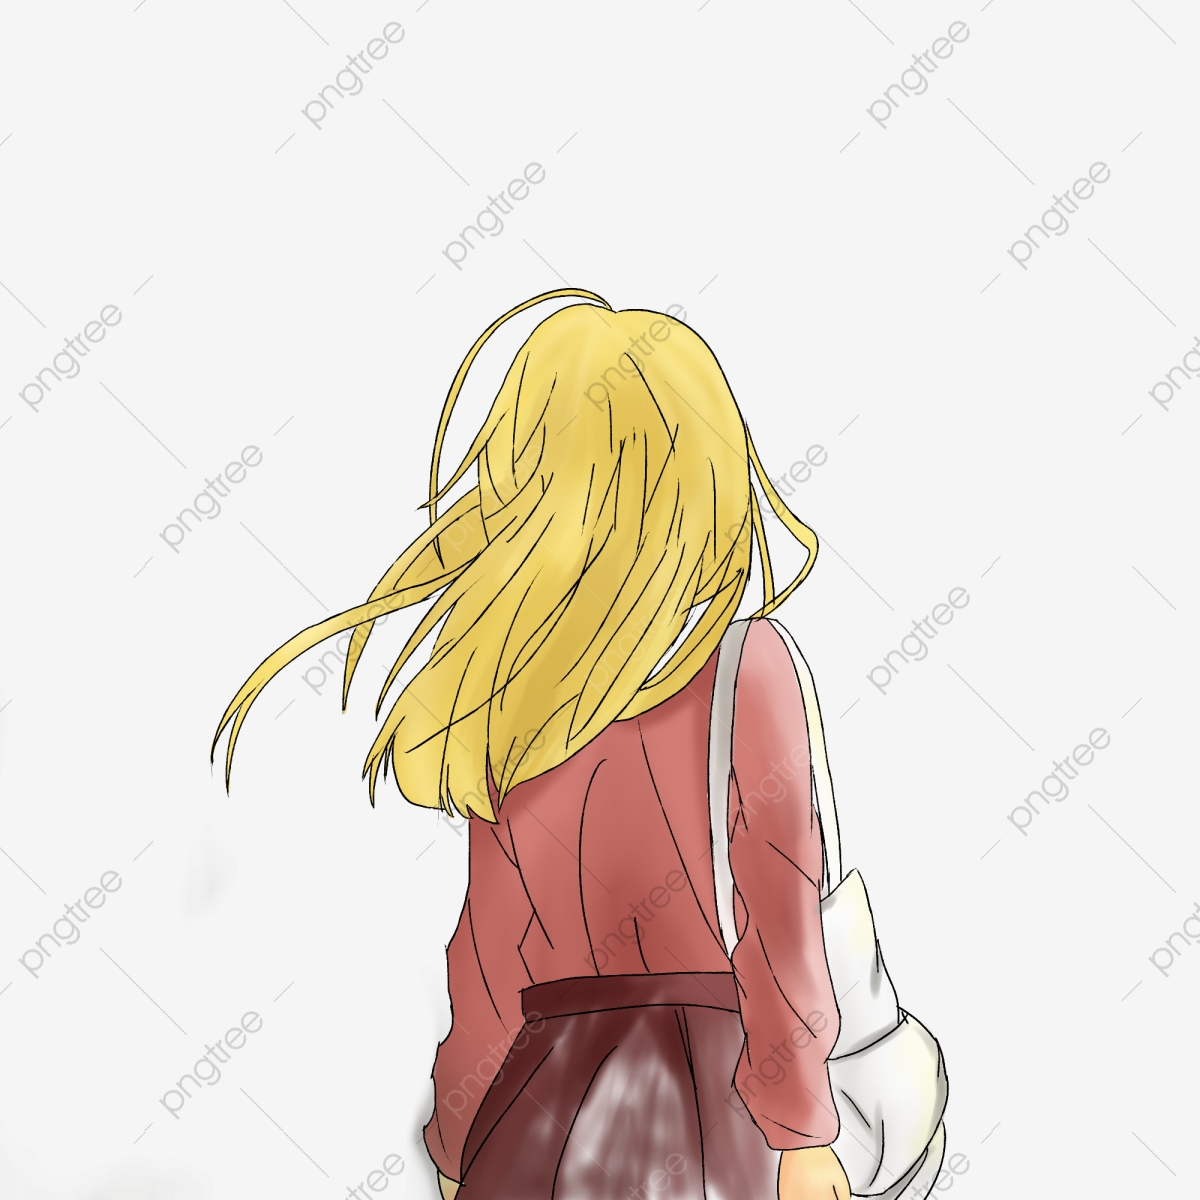 It is a graphic of Obsessed Girl Back View Drawing